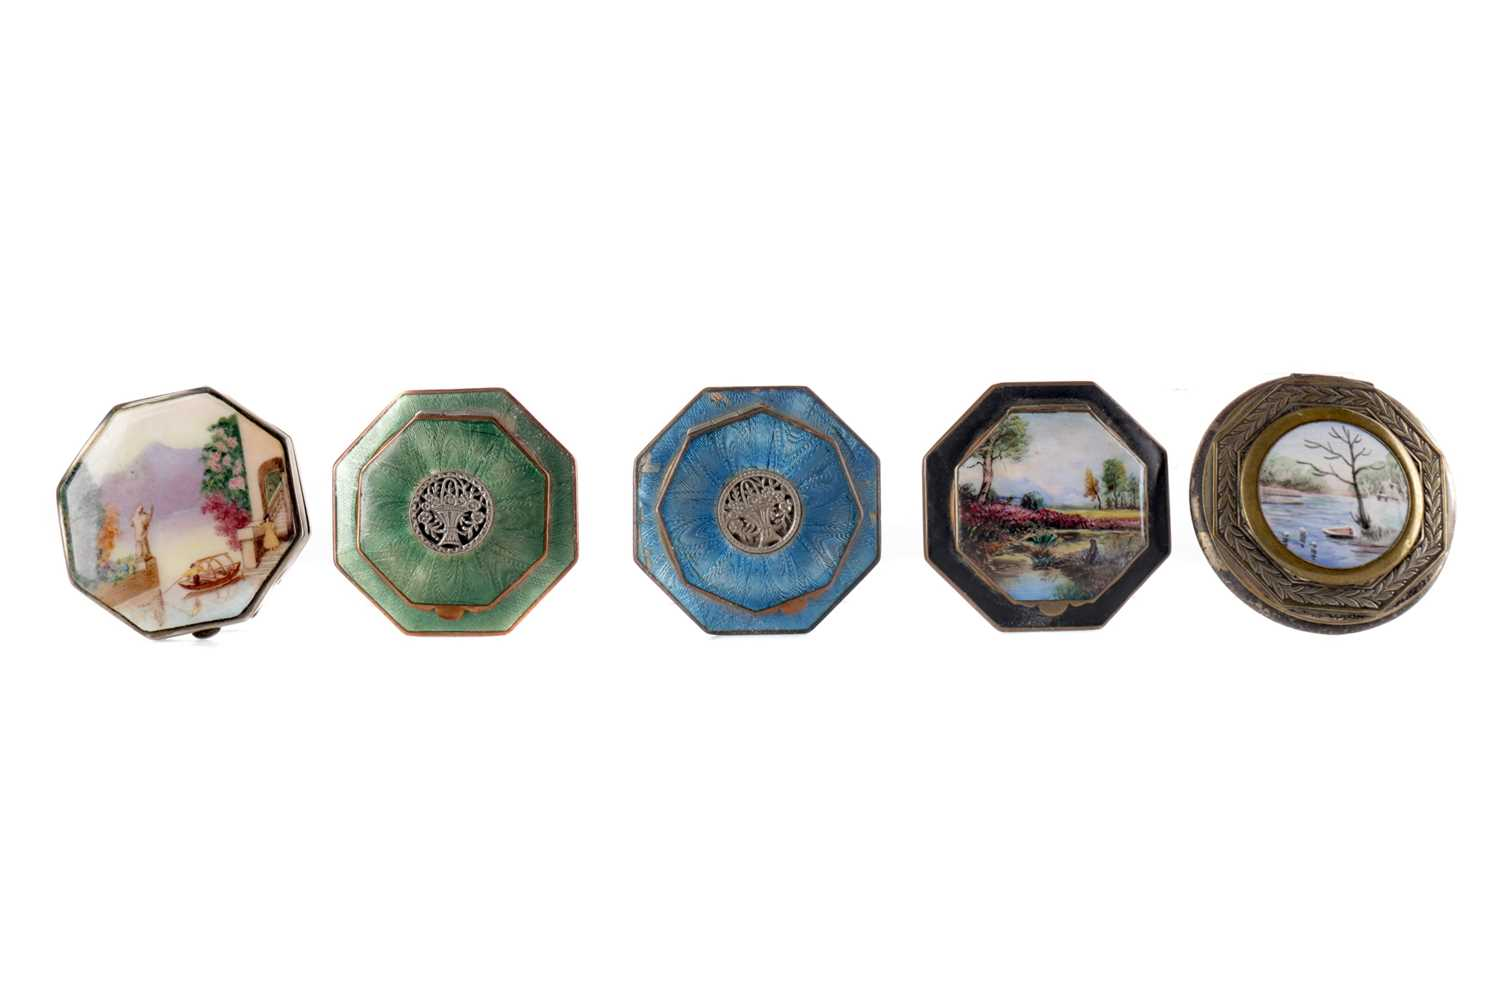 Lot 1715 - A VOGUE SILVER AND ENAMEL OCTAGONAL COMPACT AND FOUR OTHERS